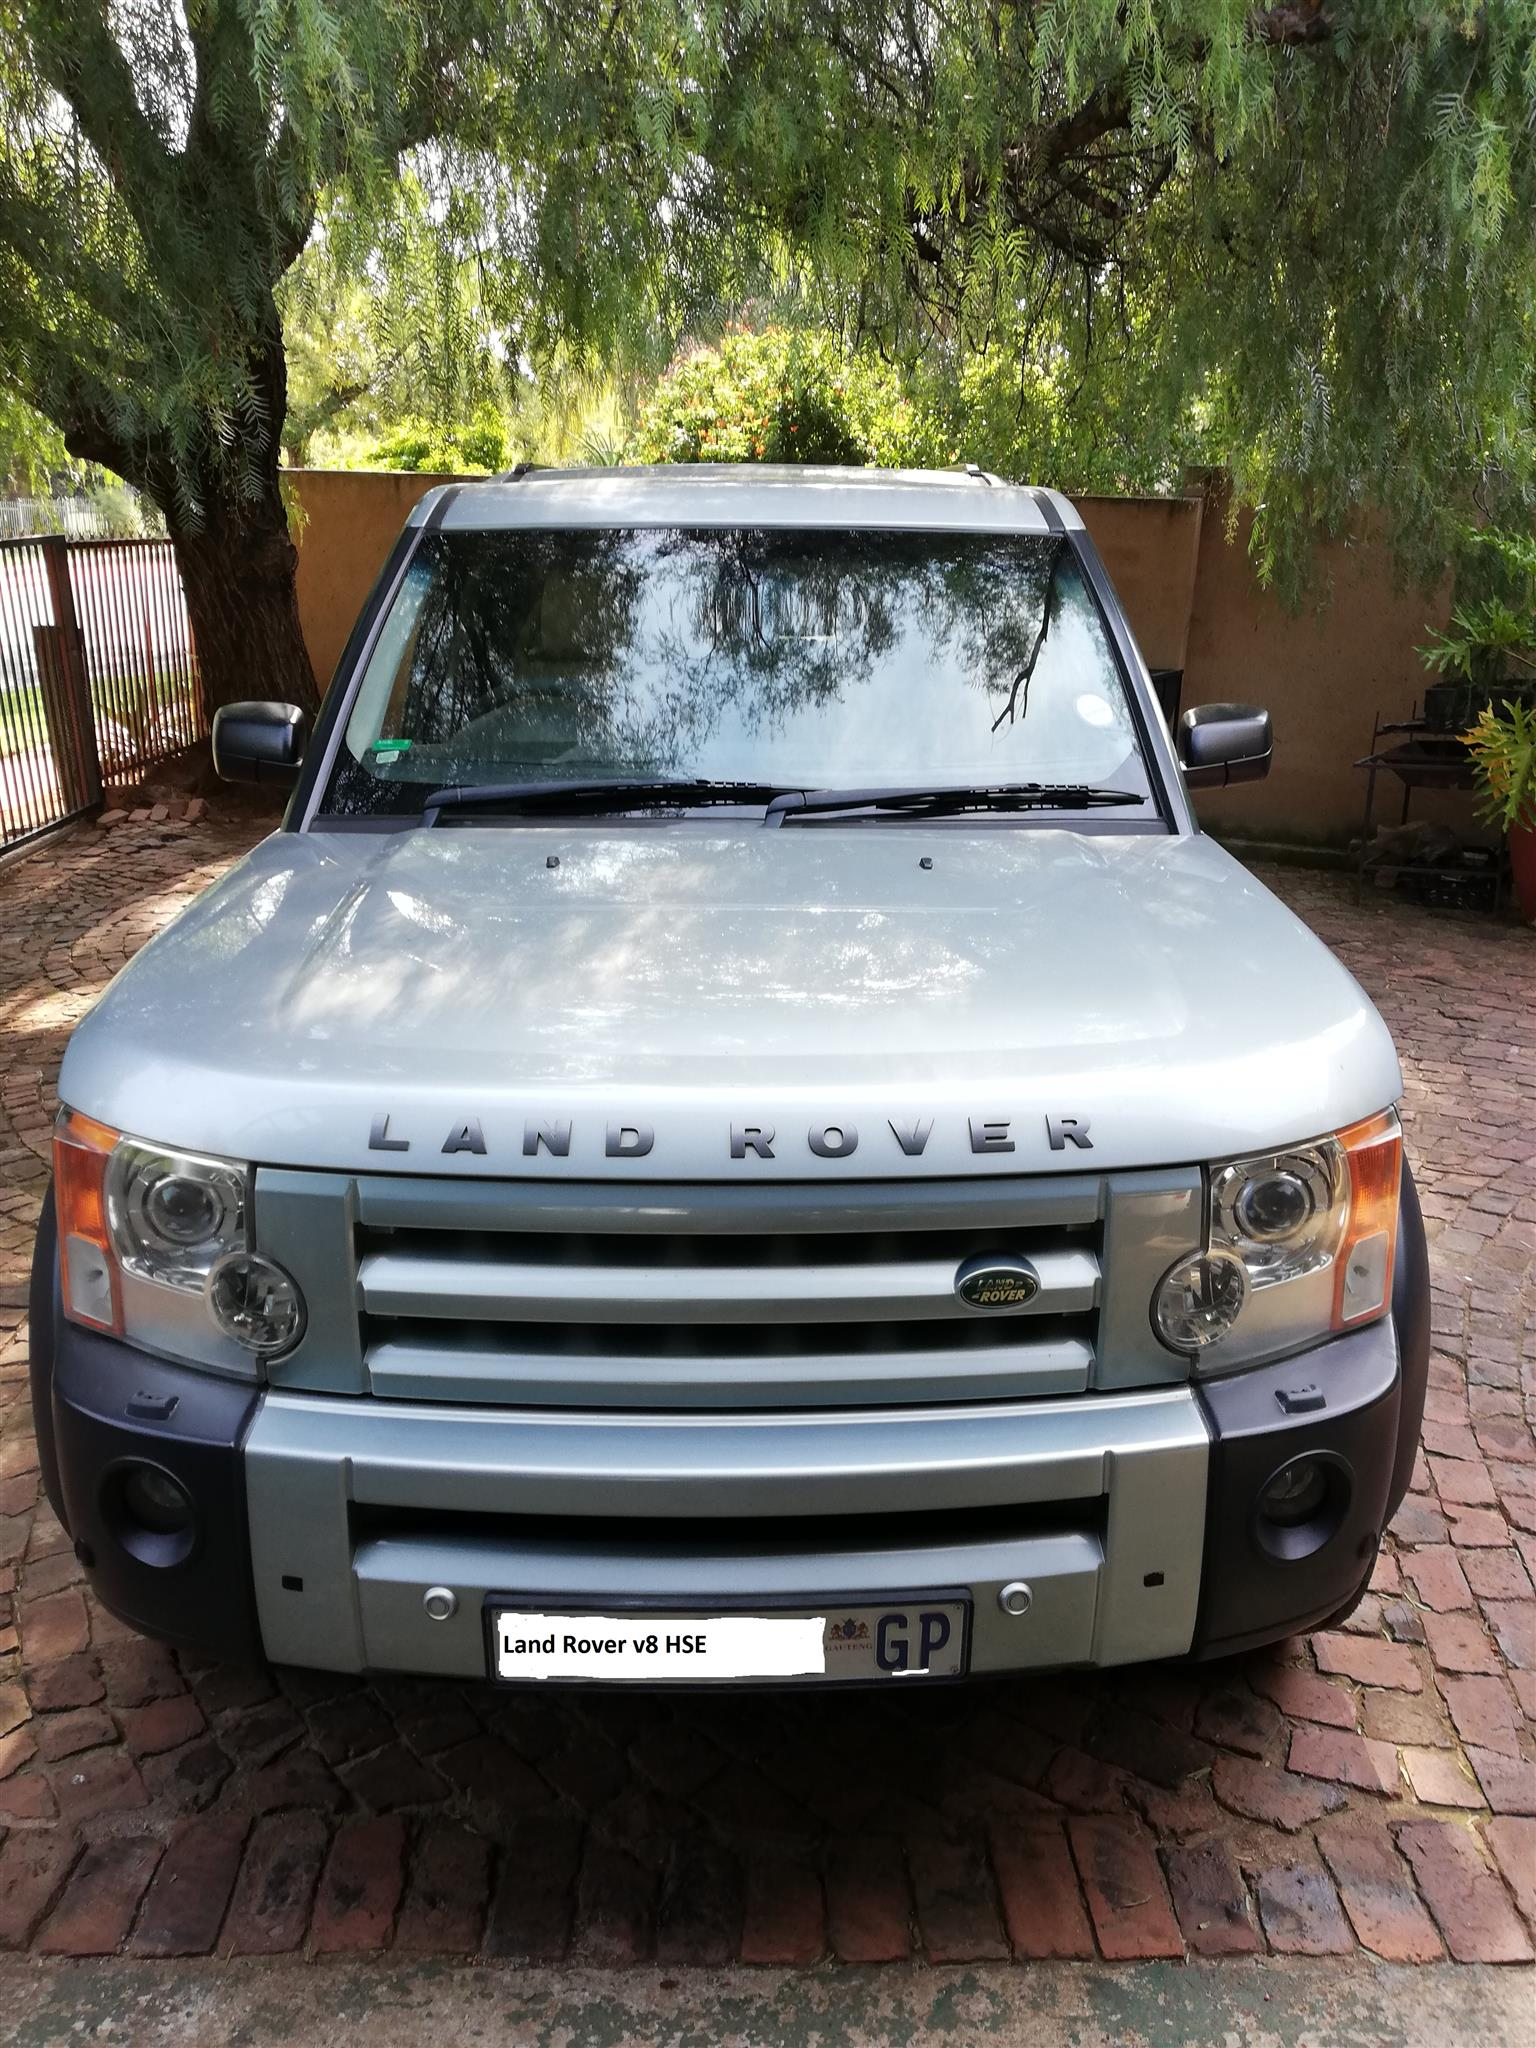 hight resolution of 2007 land rover discovery 3 v8 hse